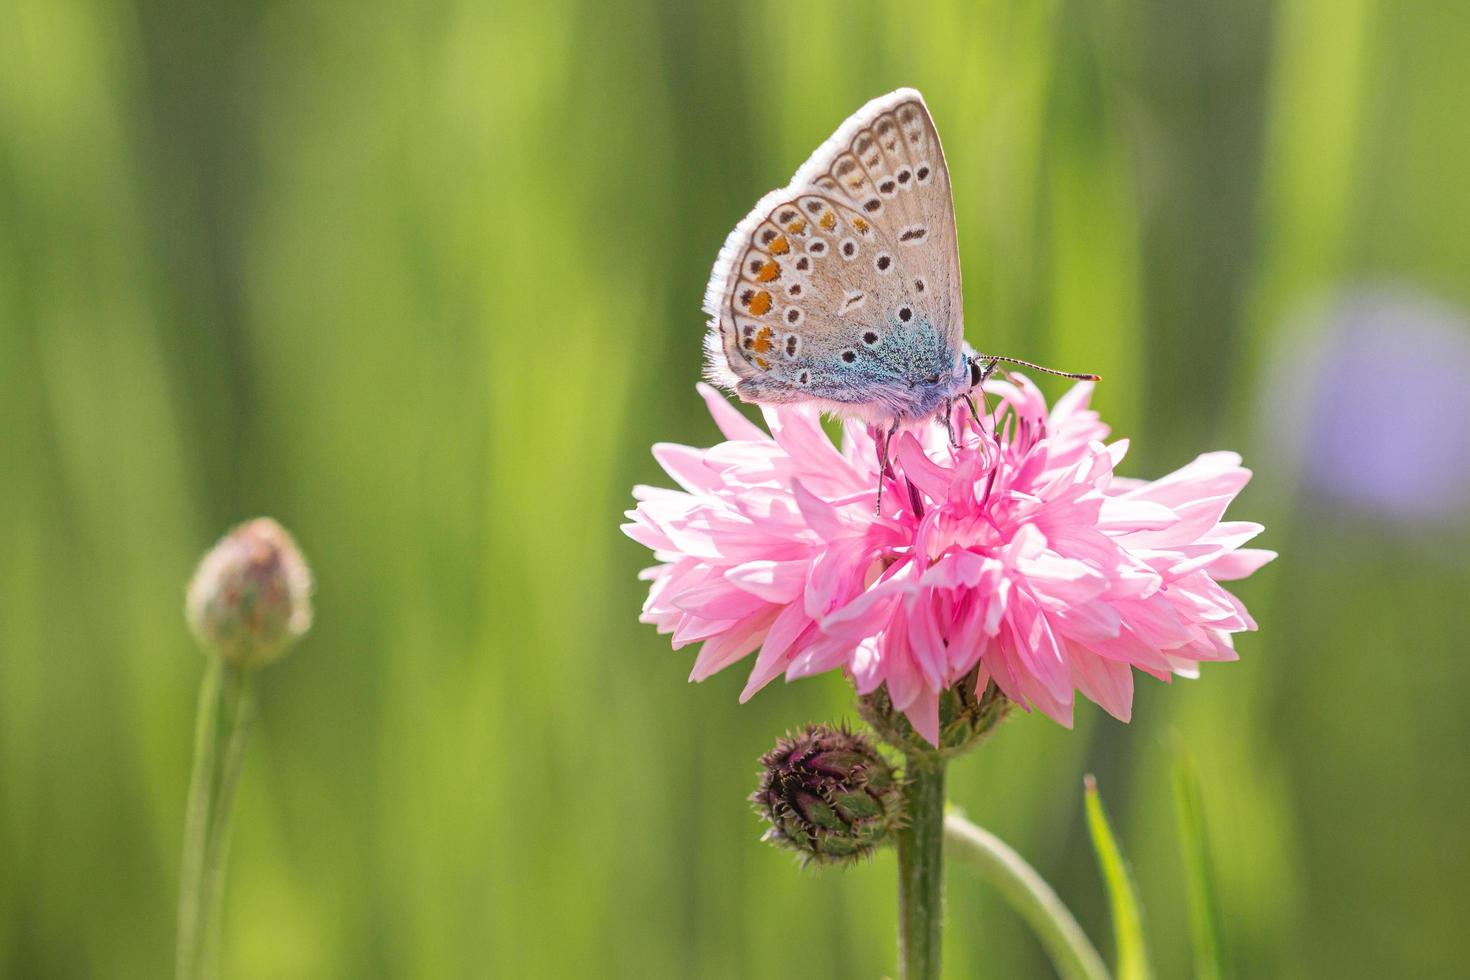 Brown and white butterfly on pink flower photo